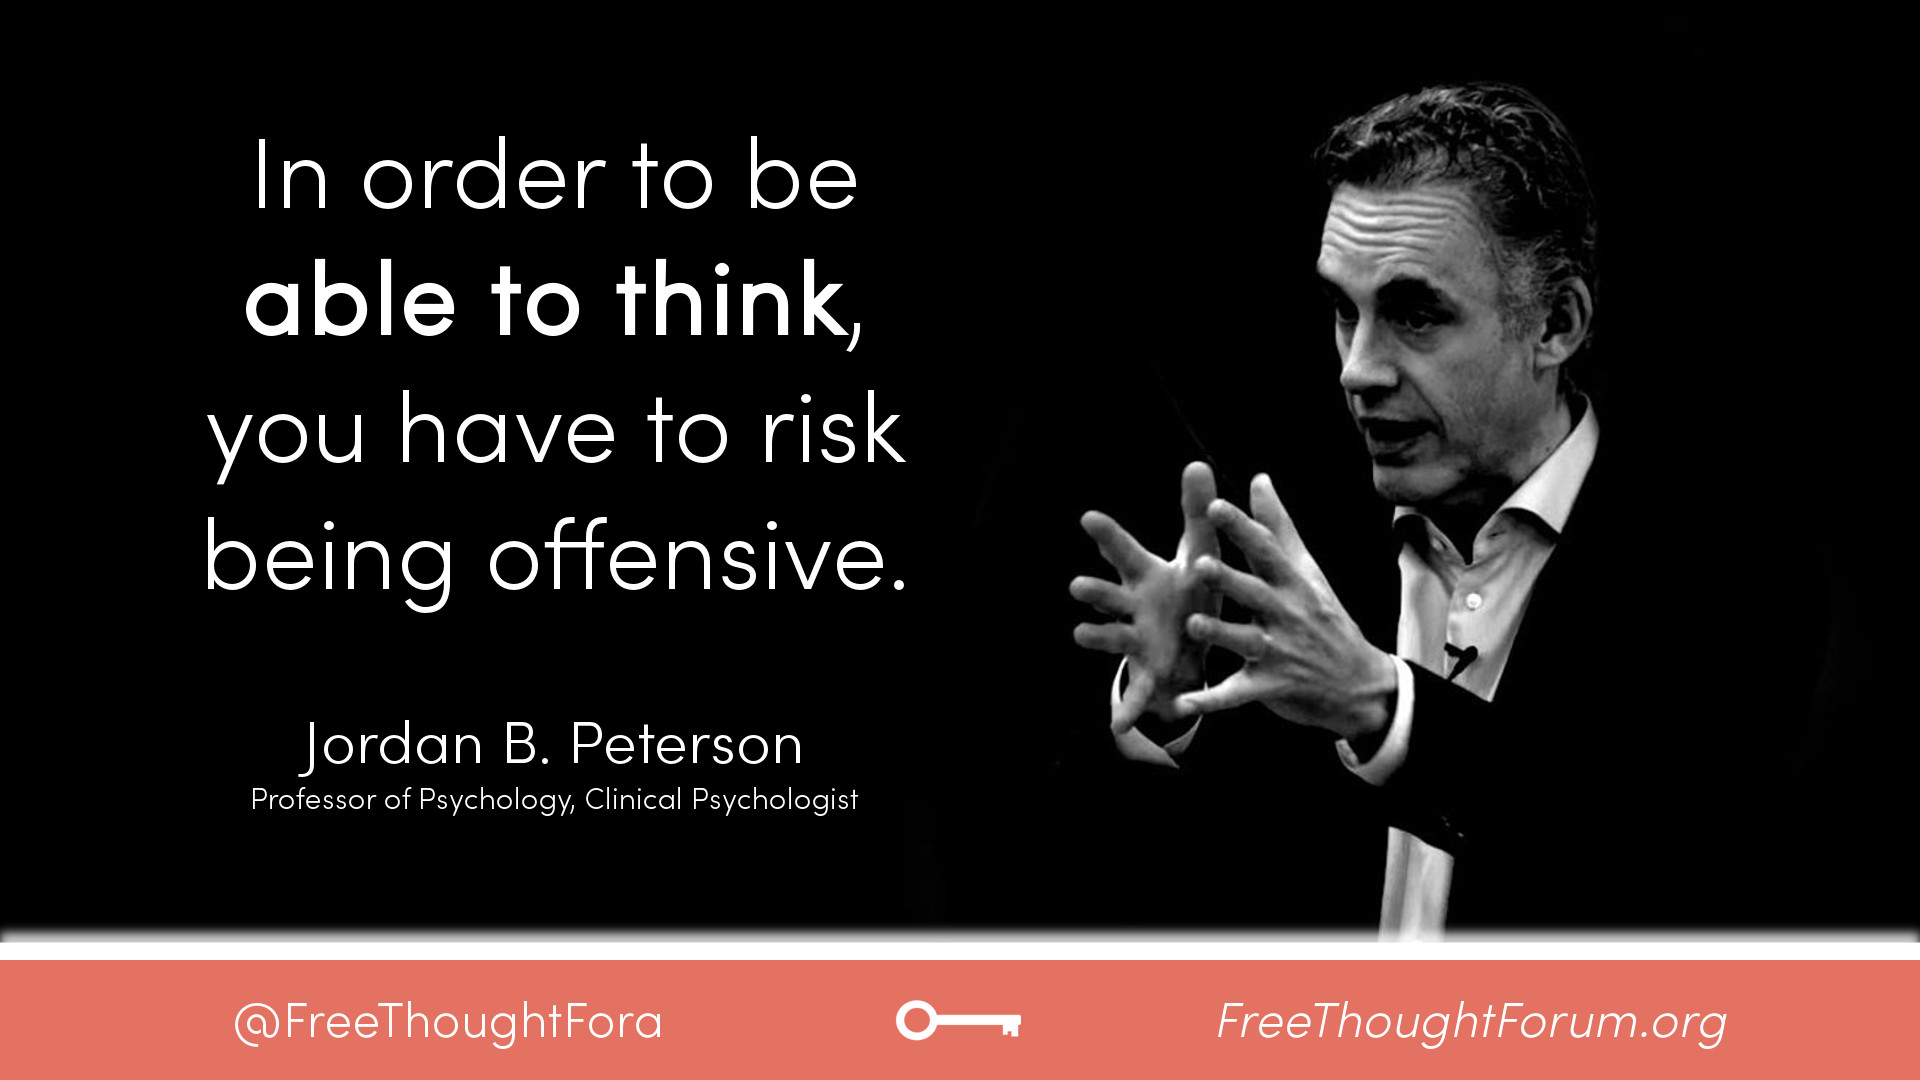 In order to be able to think, you have to risk being offensive